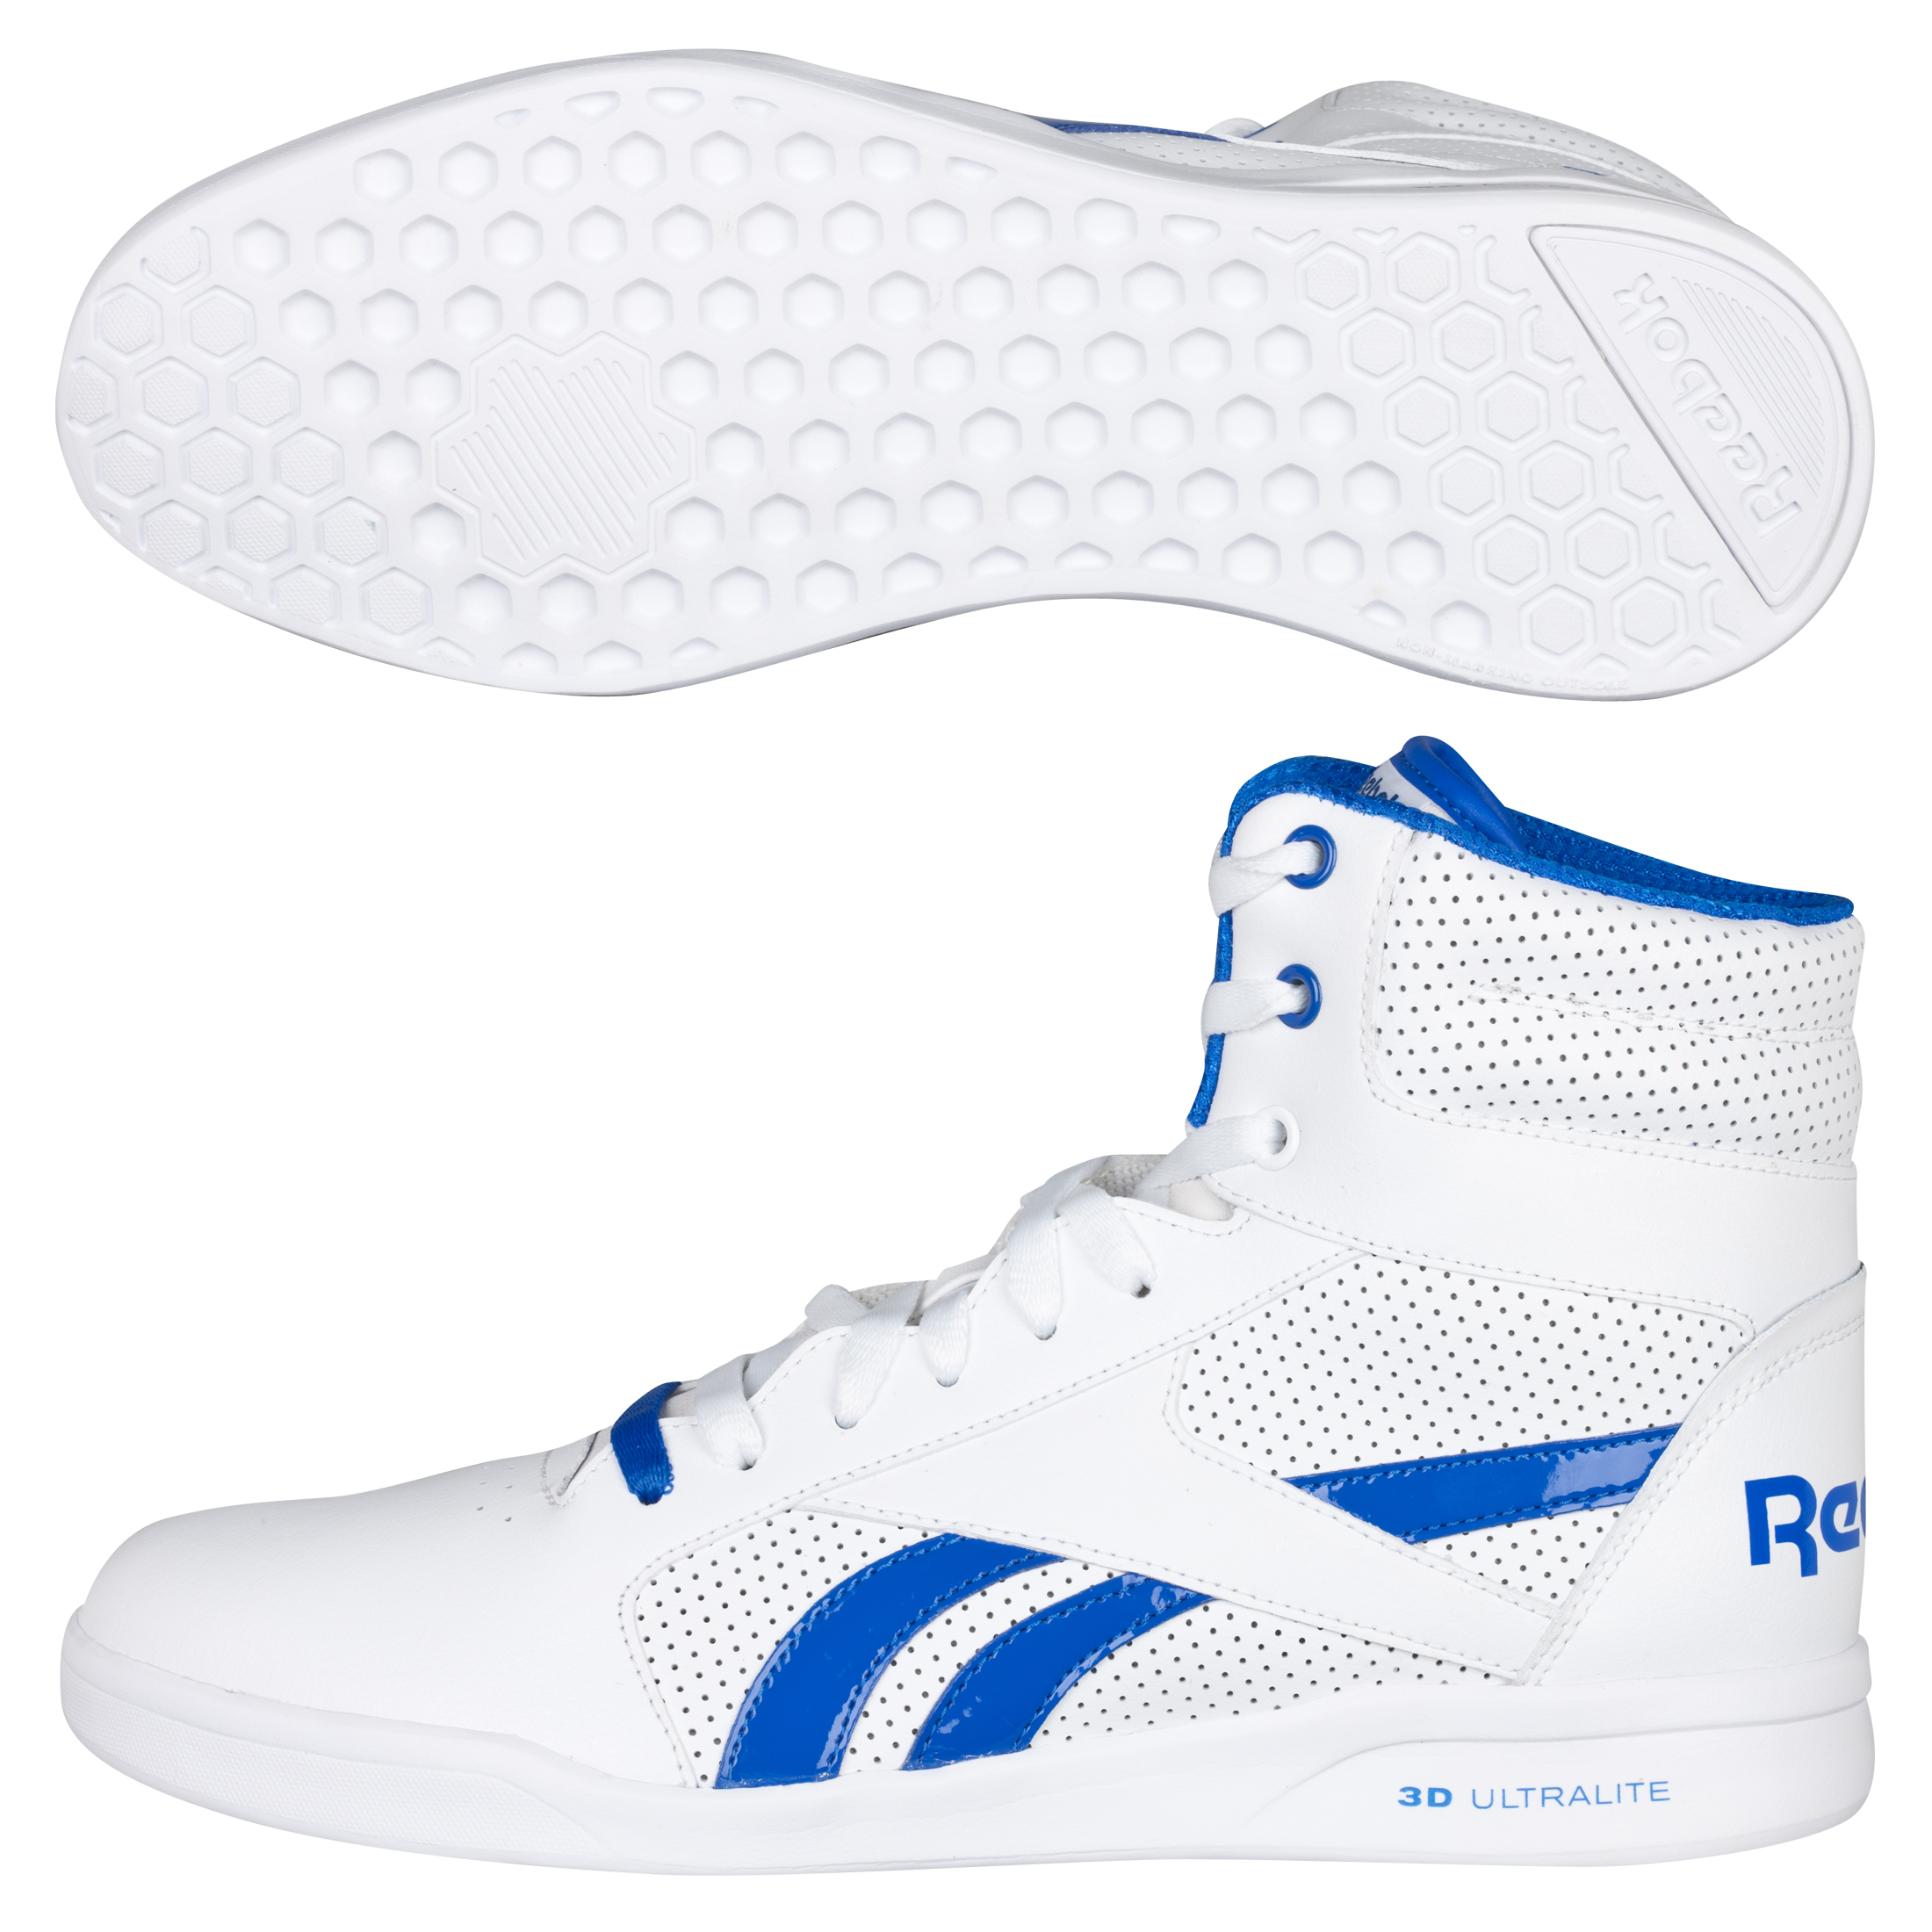 Reebok SL Fitness Ultralite Hi Trainers - White/Vital Blue